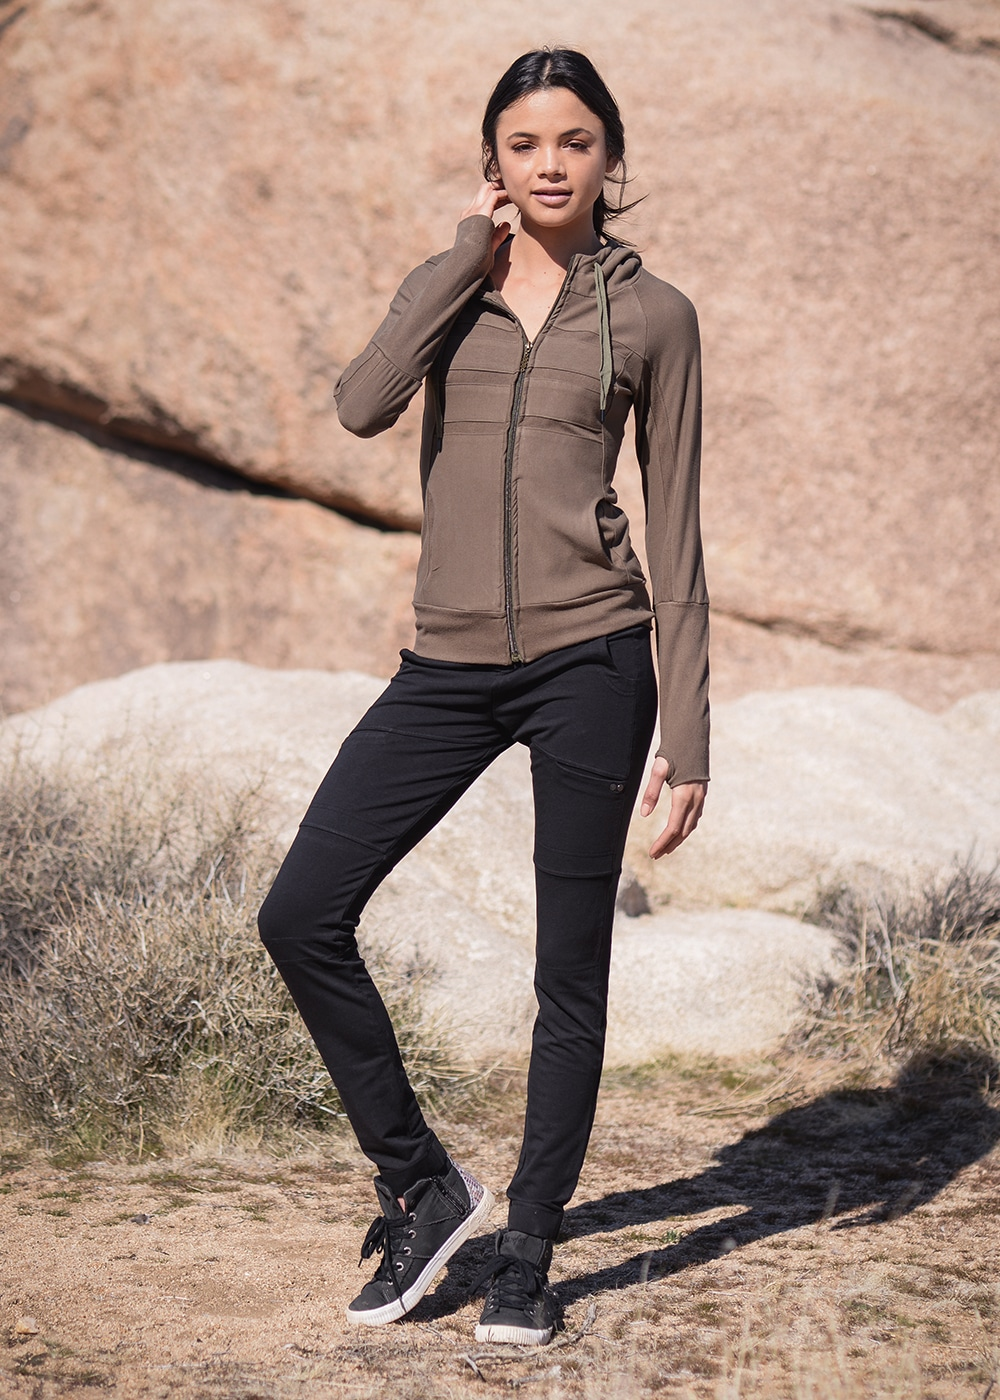 Bamboo and Organic Cotton Frequency Hoodie in Olive Green by Nomads Hemp Wear Full Body